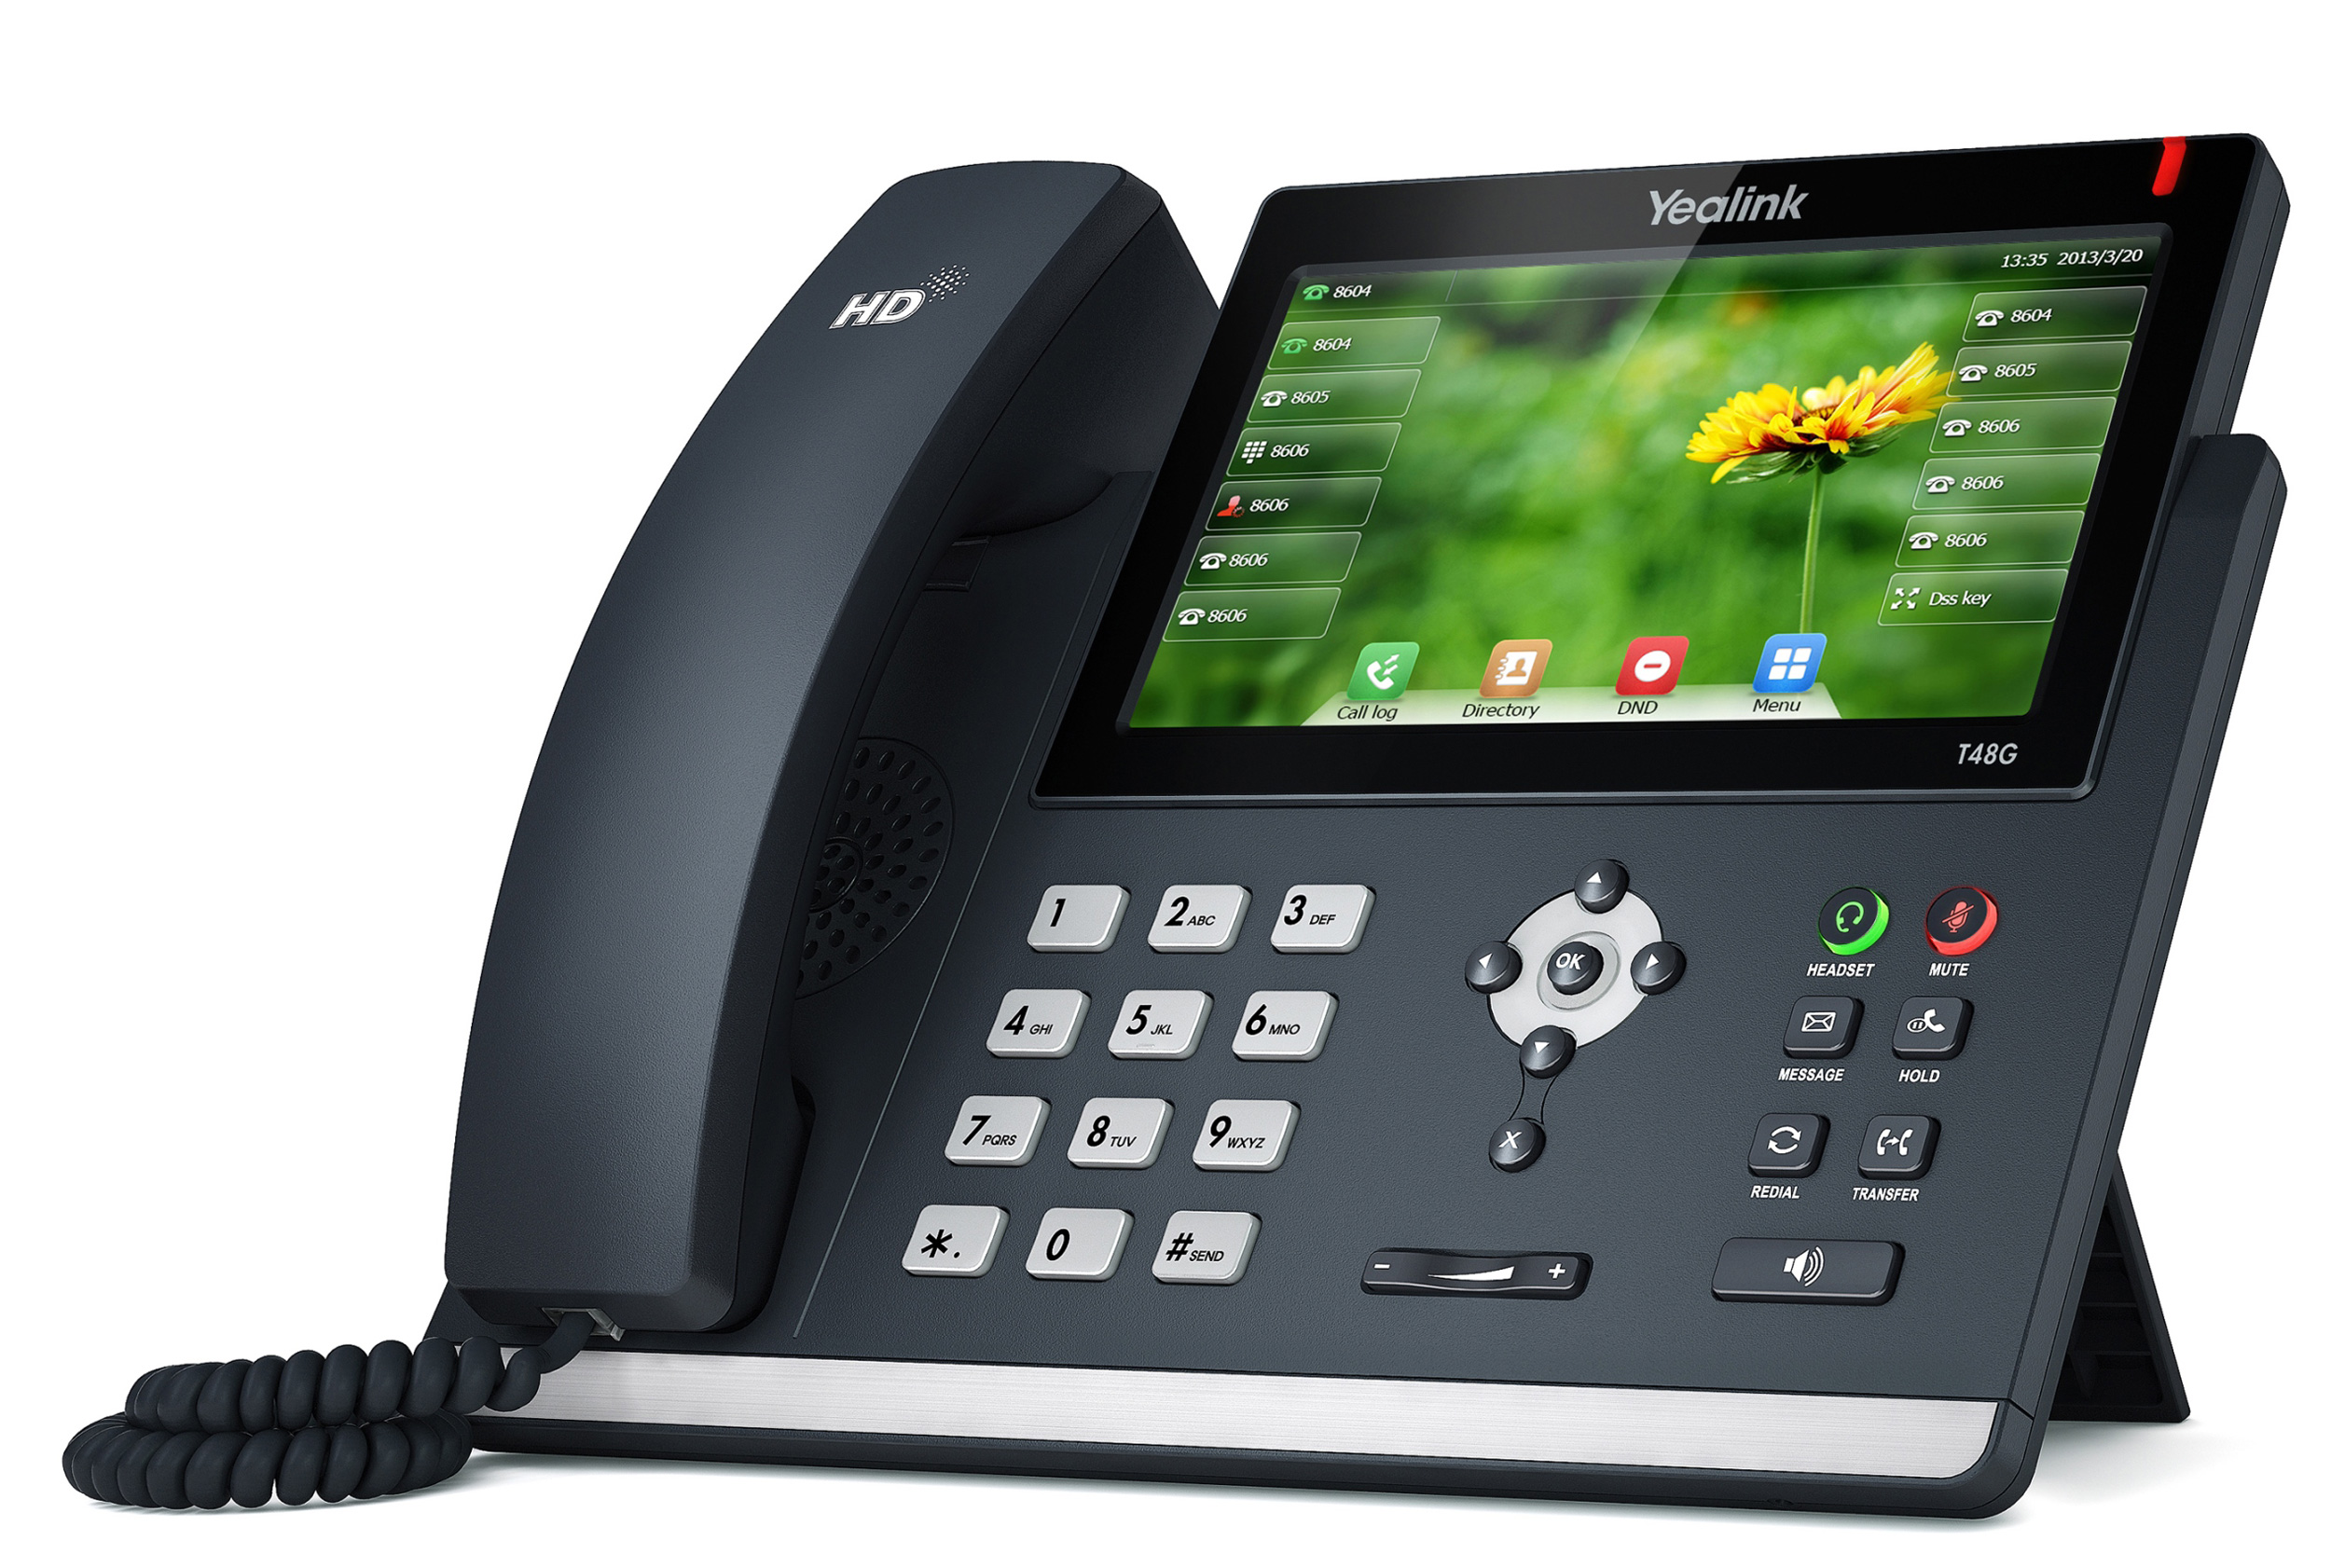 Yea Link telephone telecom system